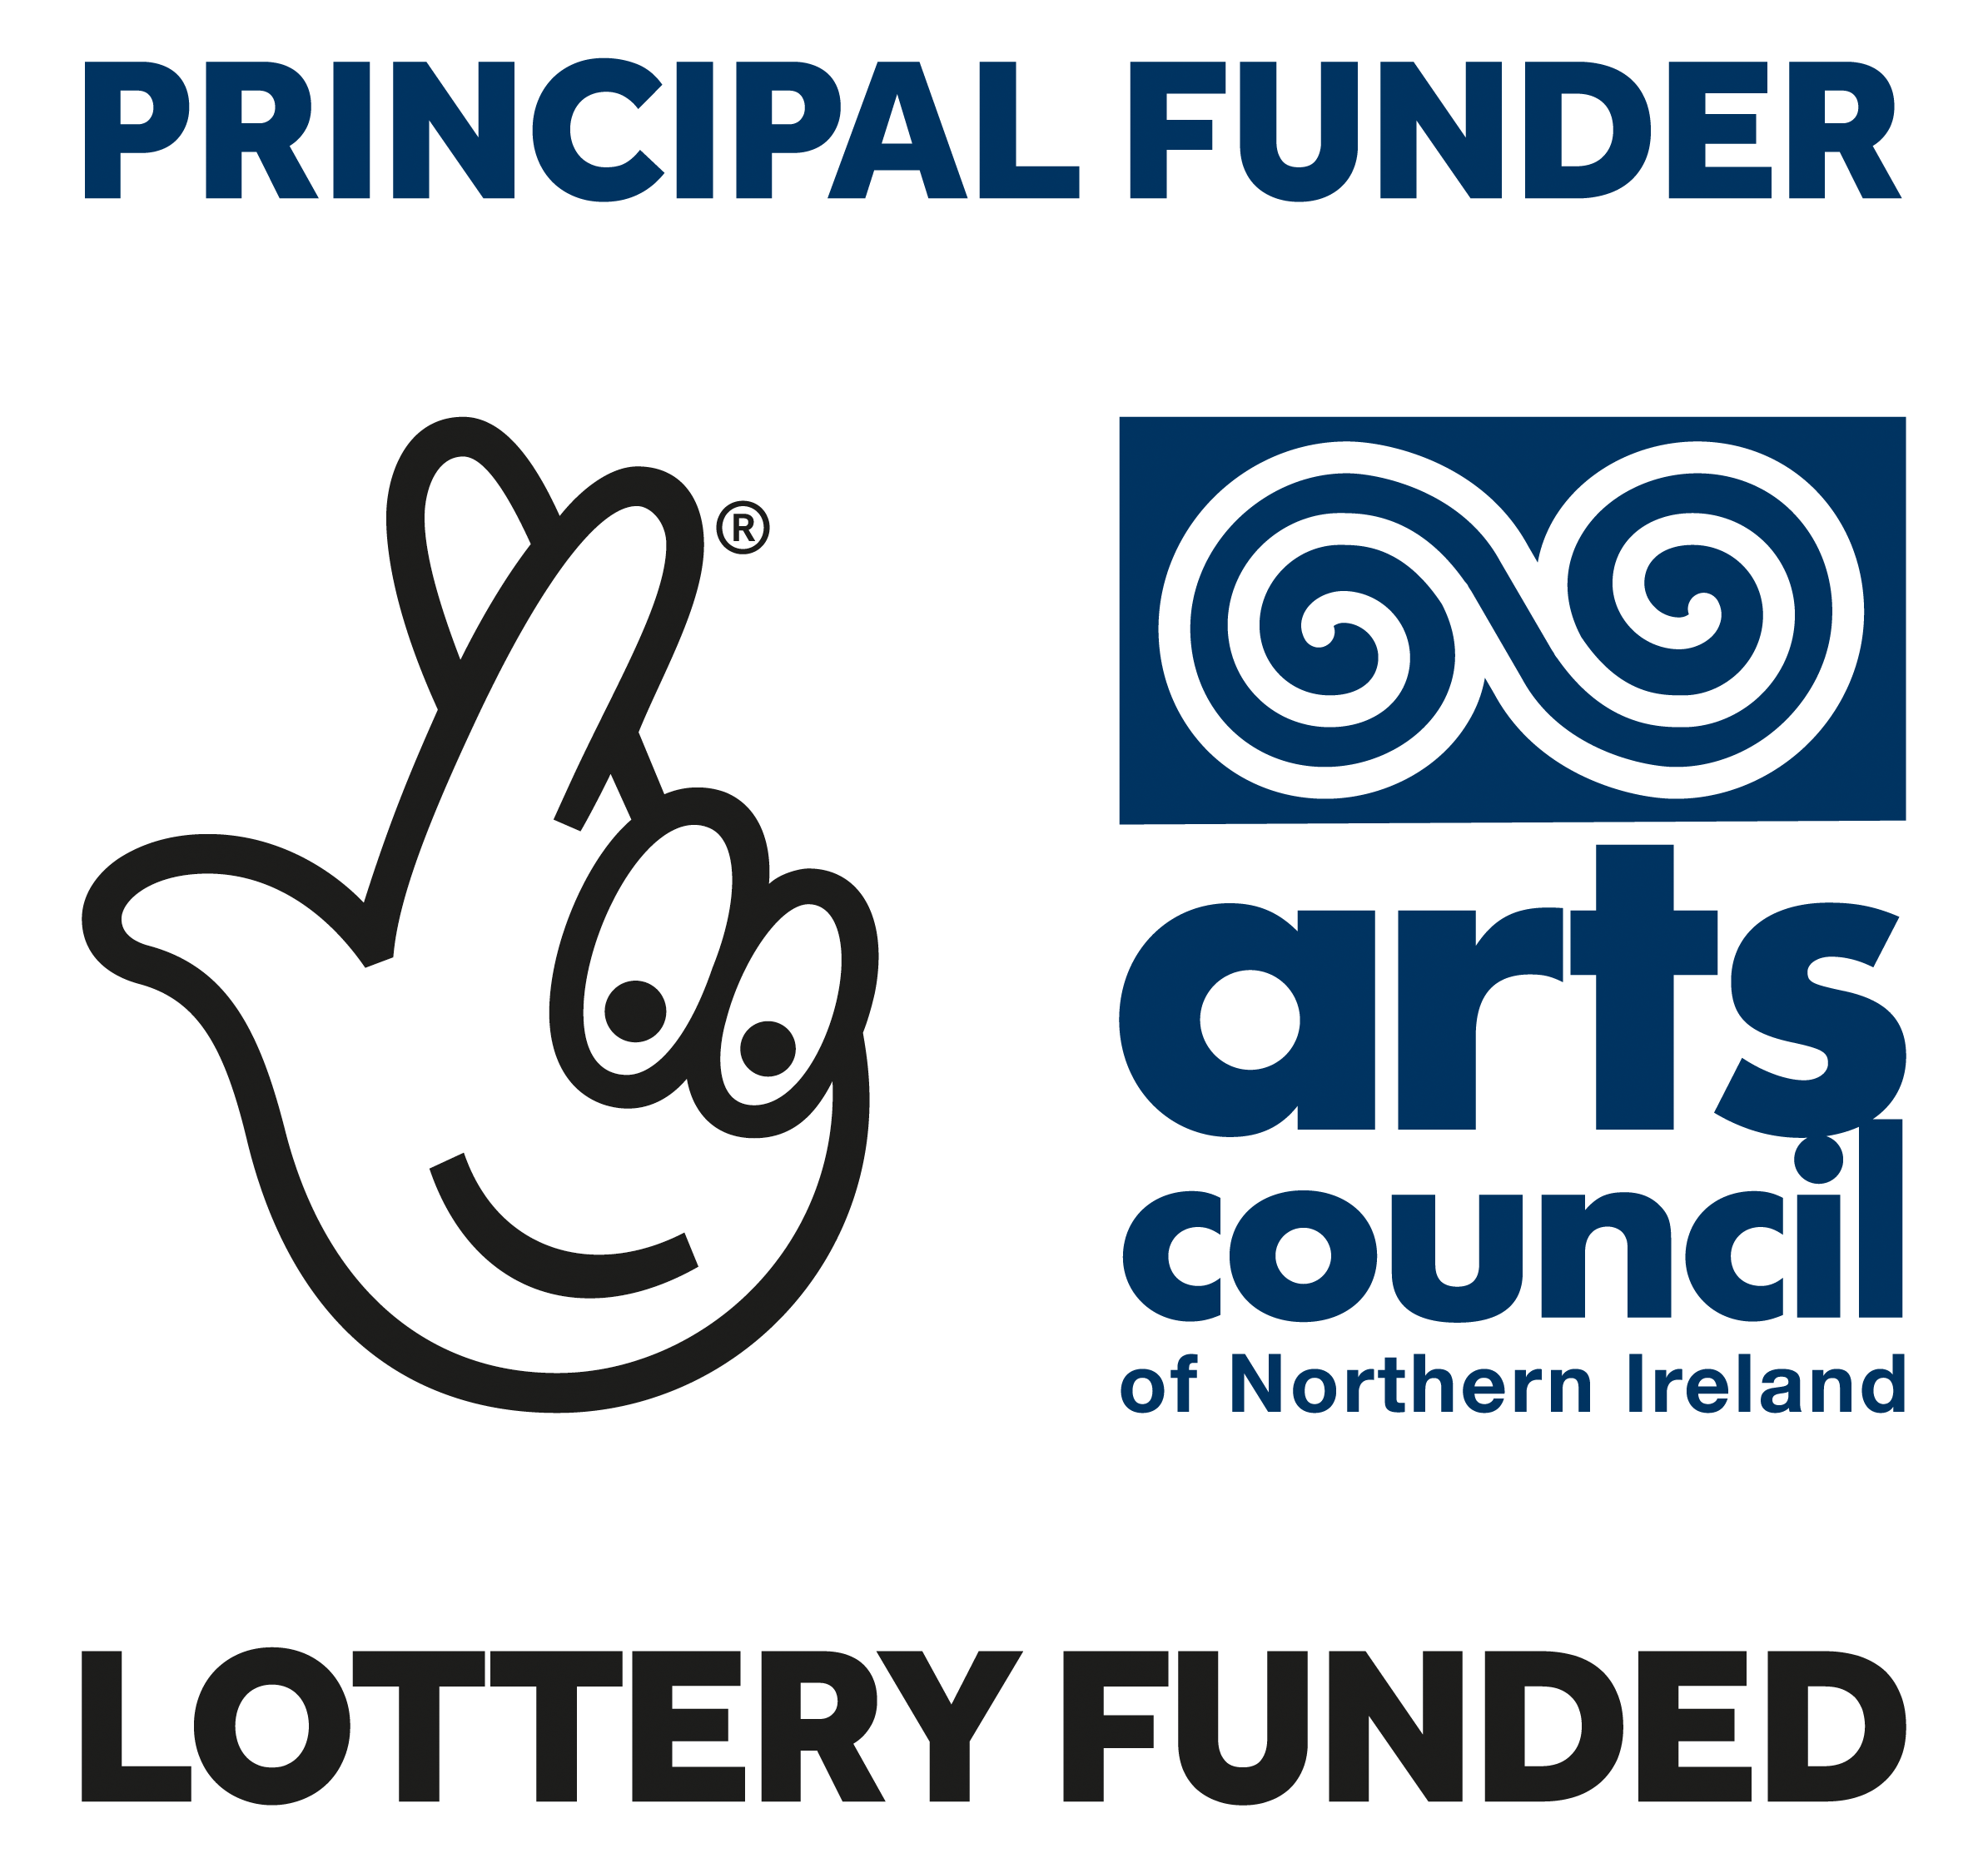 This tour was kindly funded by The National Lottery through the Arts Council of Northern Ireland.